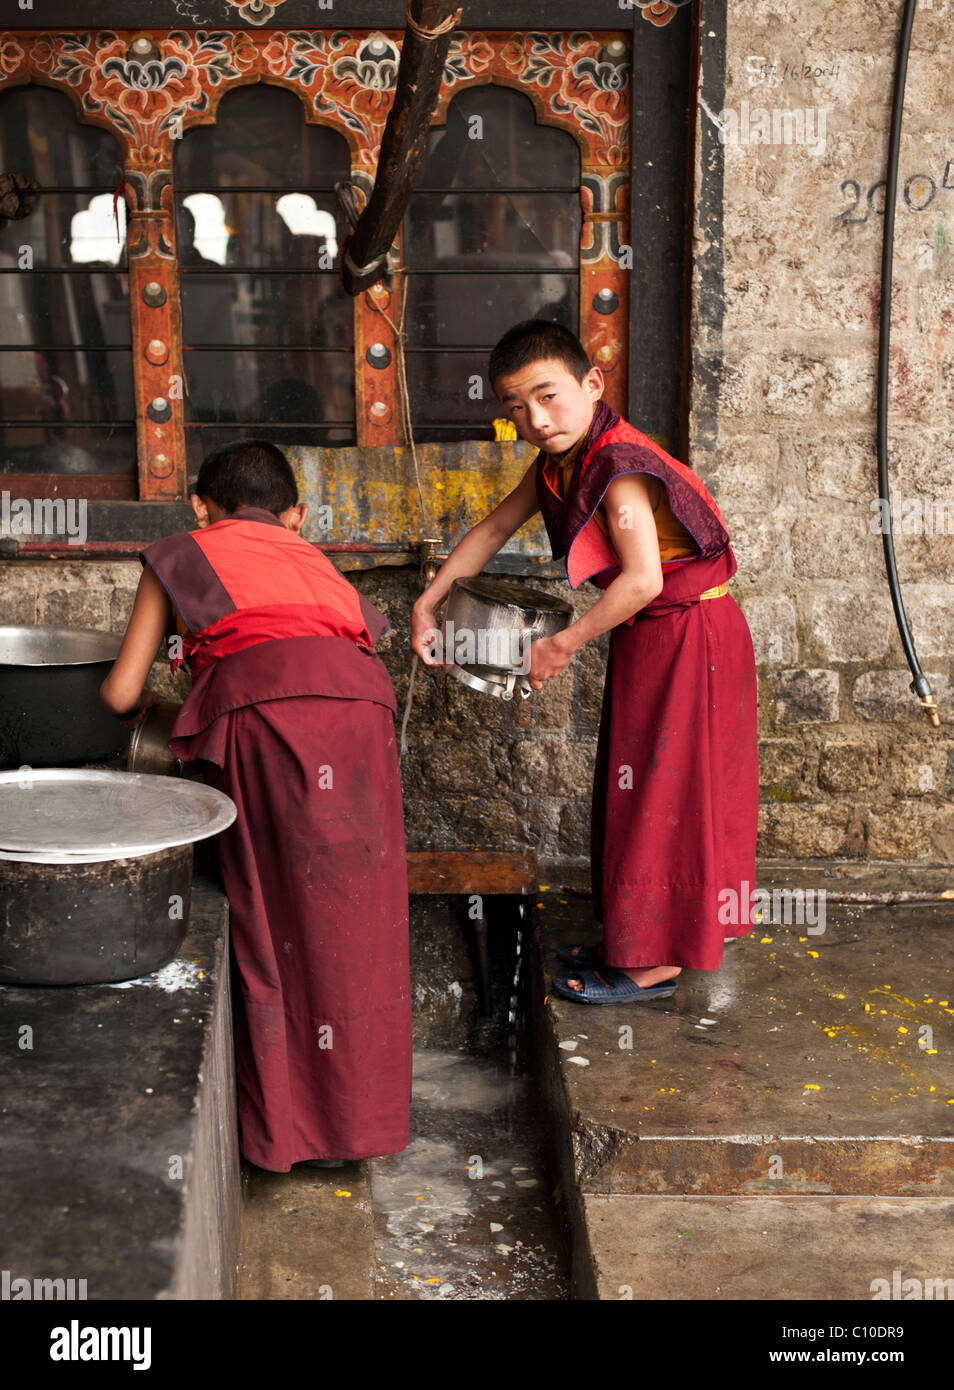 Two young Bhutanese Buddhist monks clean the dishes of the monastery after a meal at a temple in Central Bhutan - Stock Image